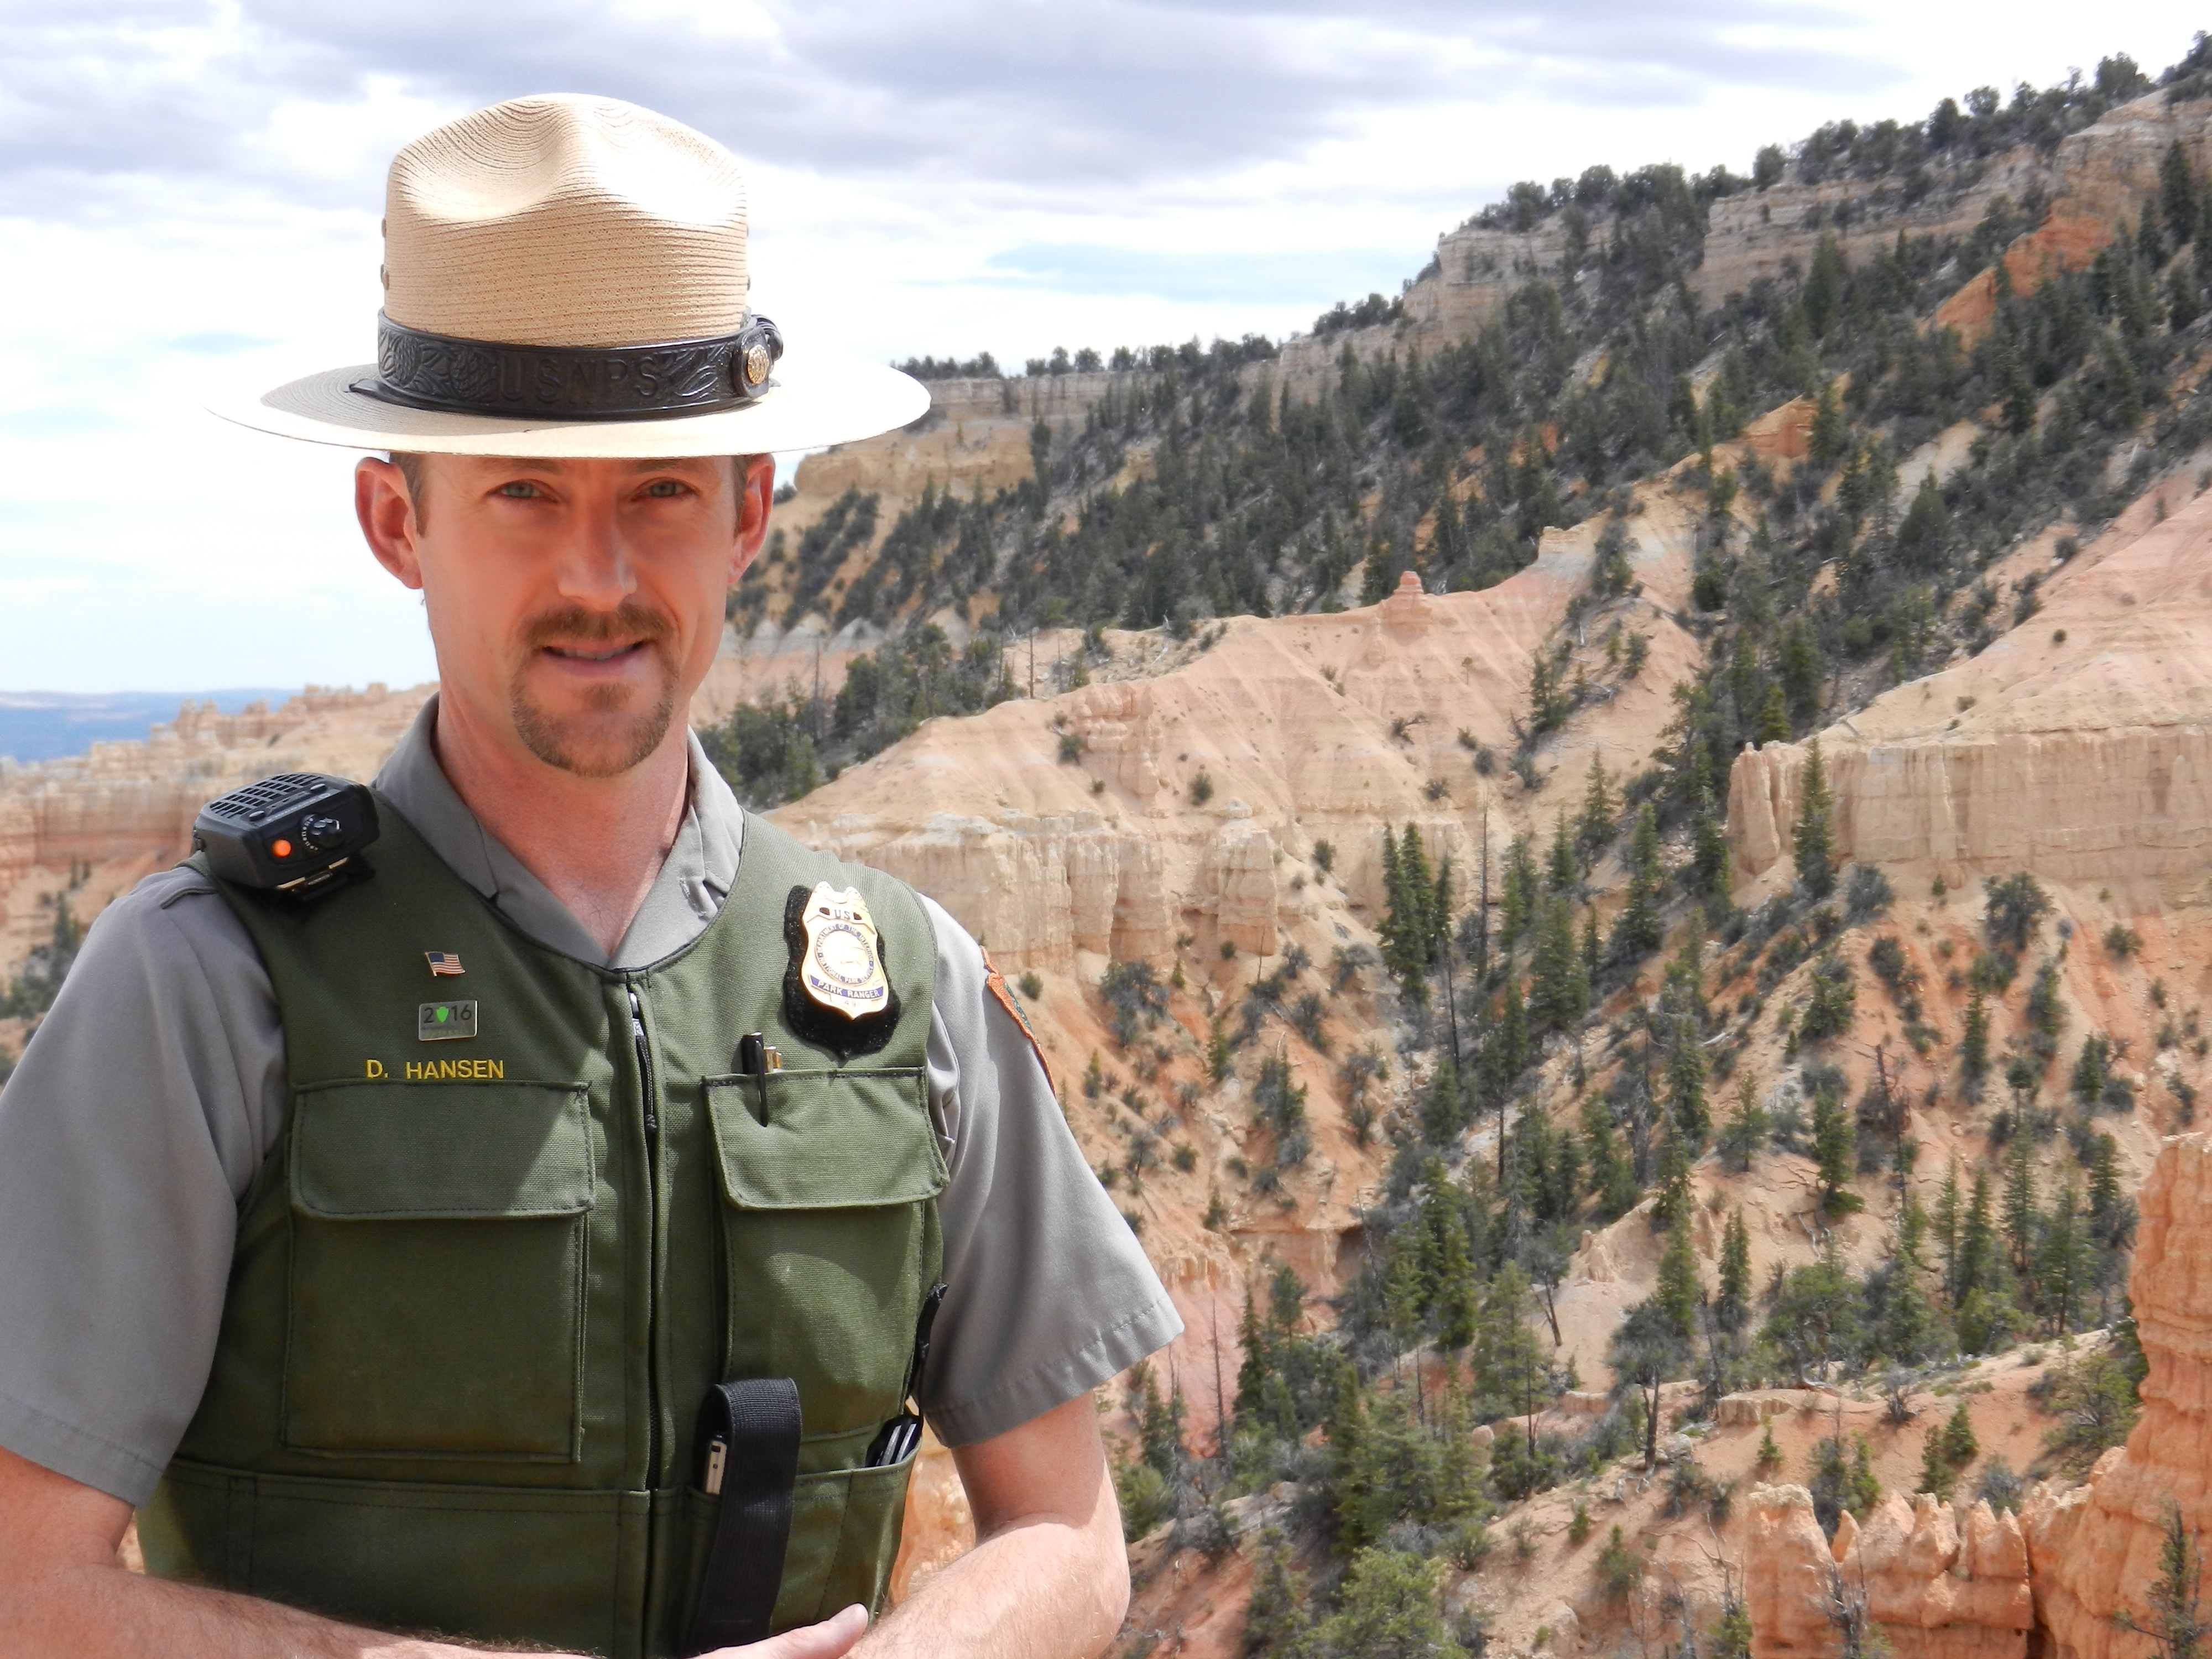 Lava Beds and Tule Lake Unit new Chief Ranger David Hansen